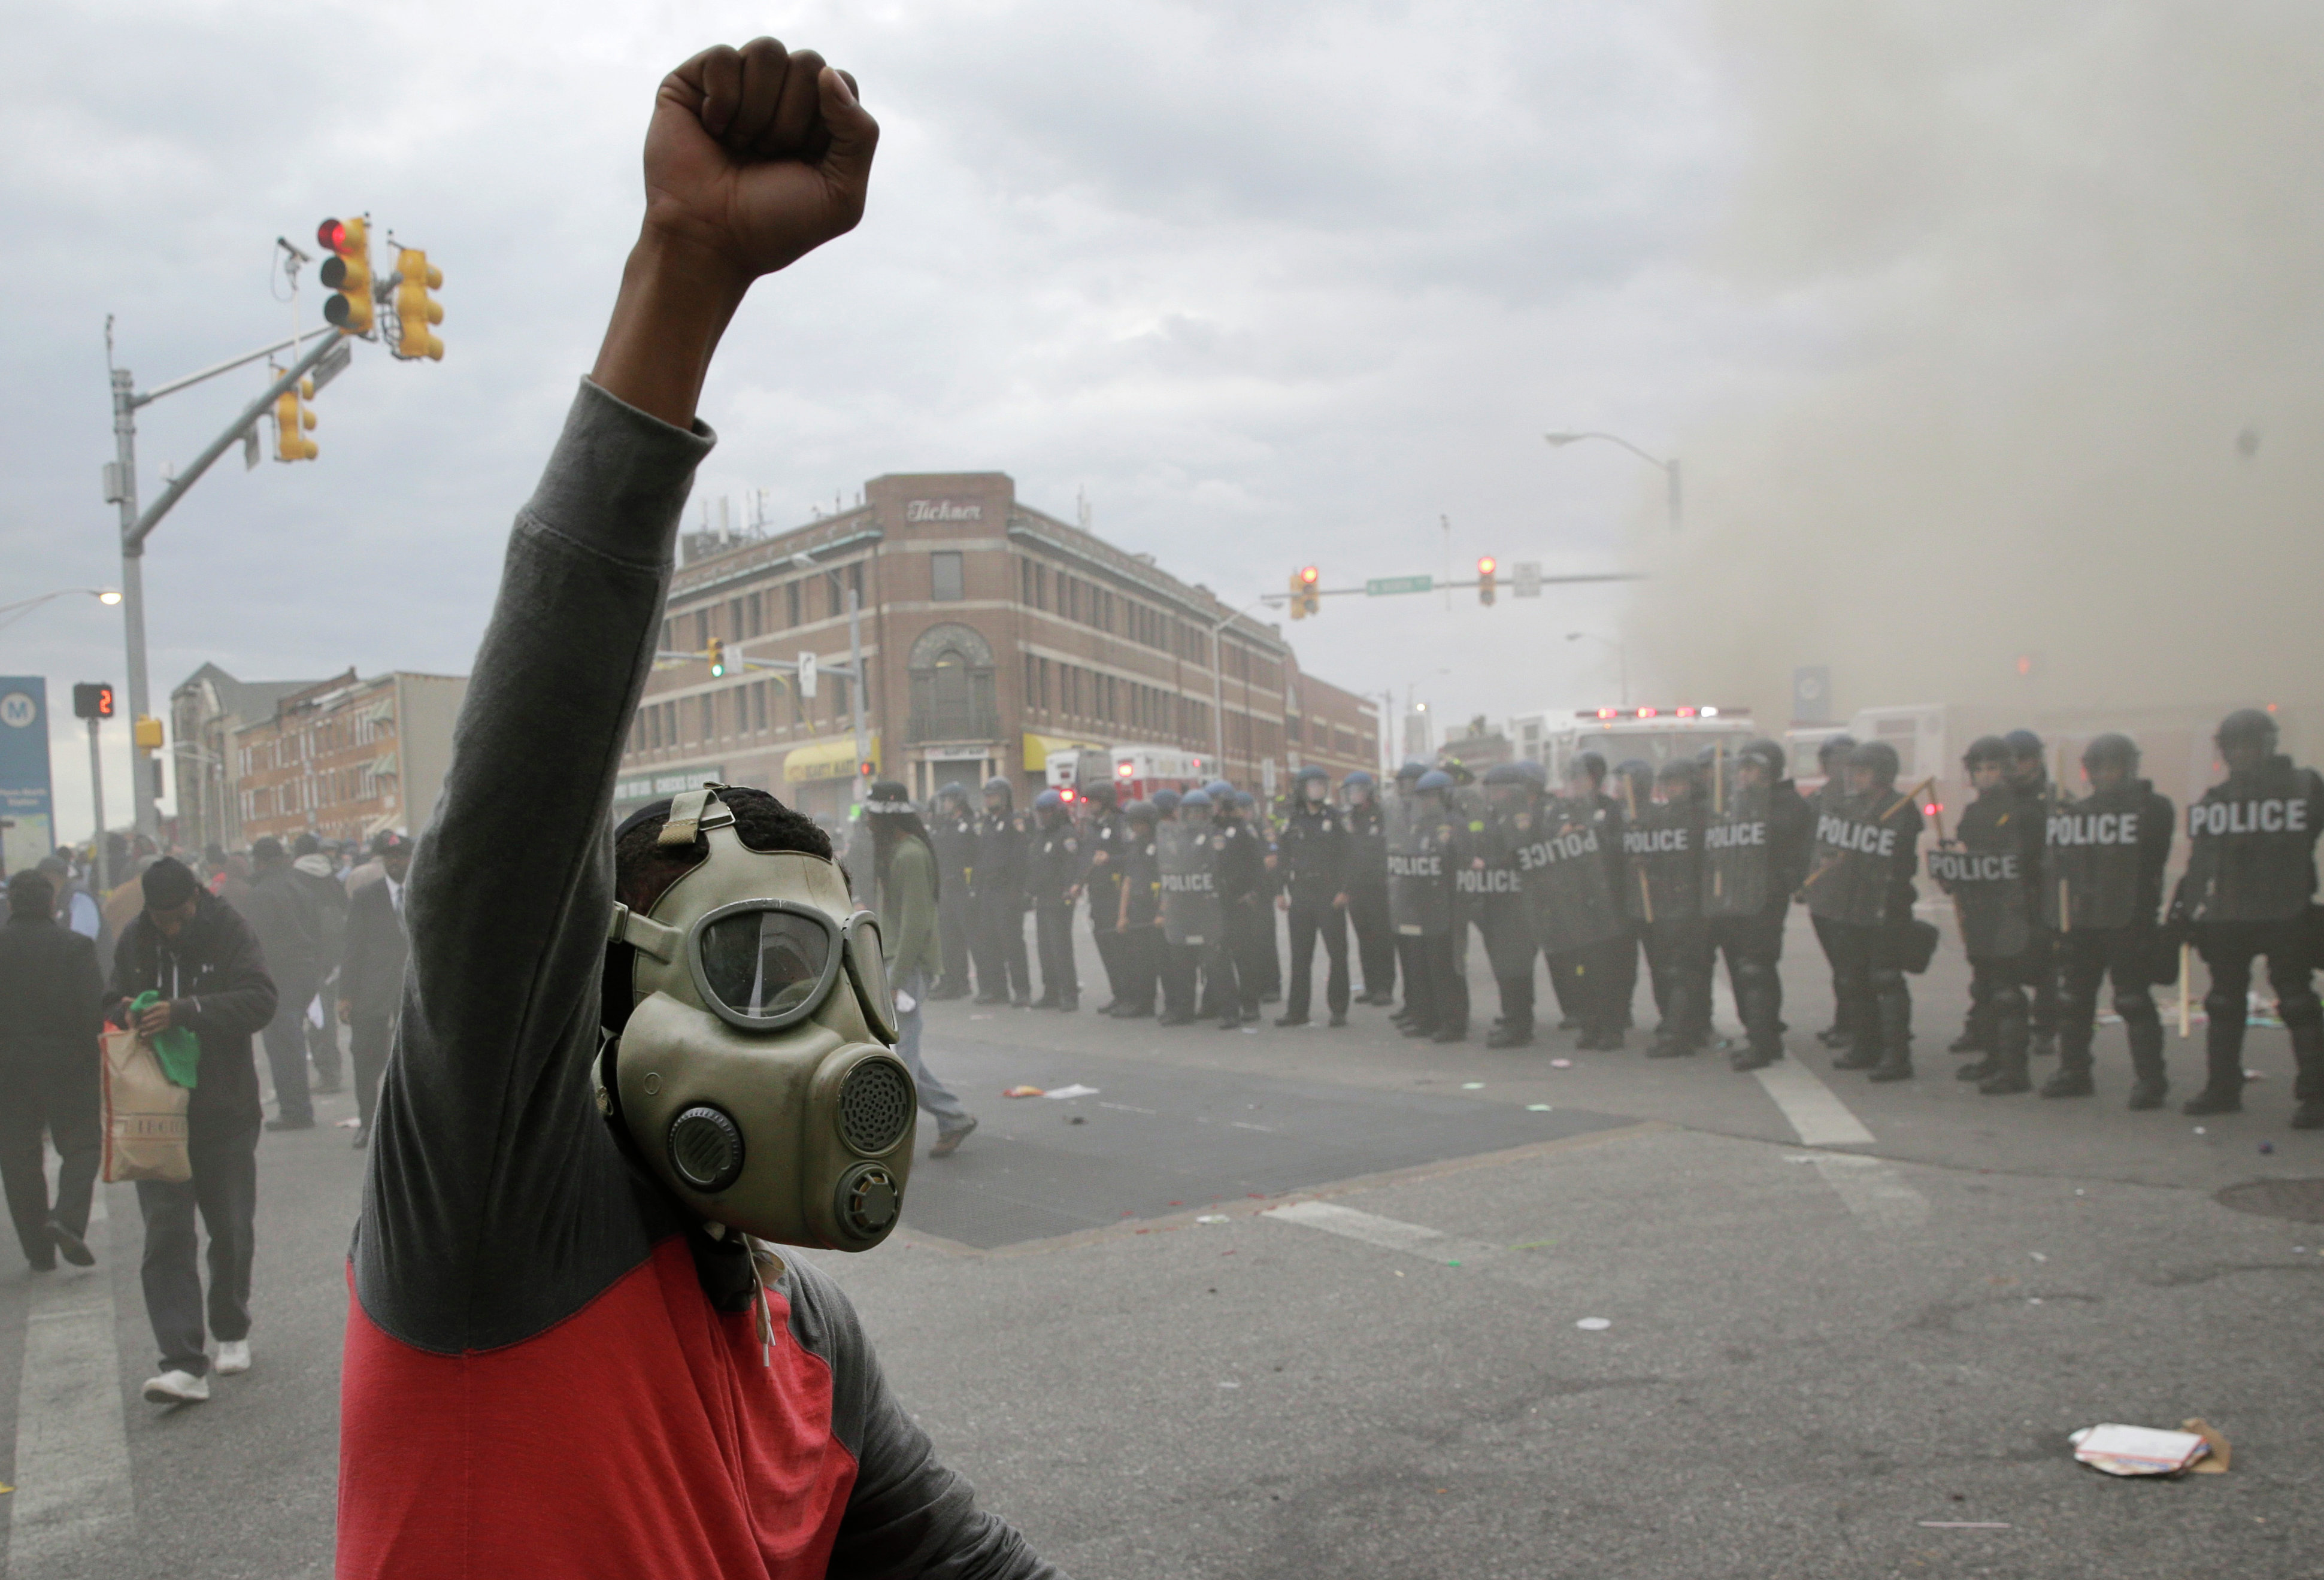 A demonstrator raises his fist as police stand in formation as a store burns, Monday, April 27, 2015, during unrest following the funeral of Freddie Gray in Baltimore